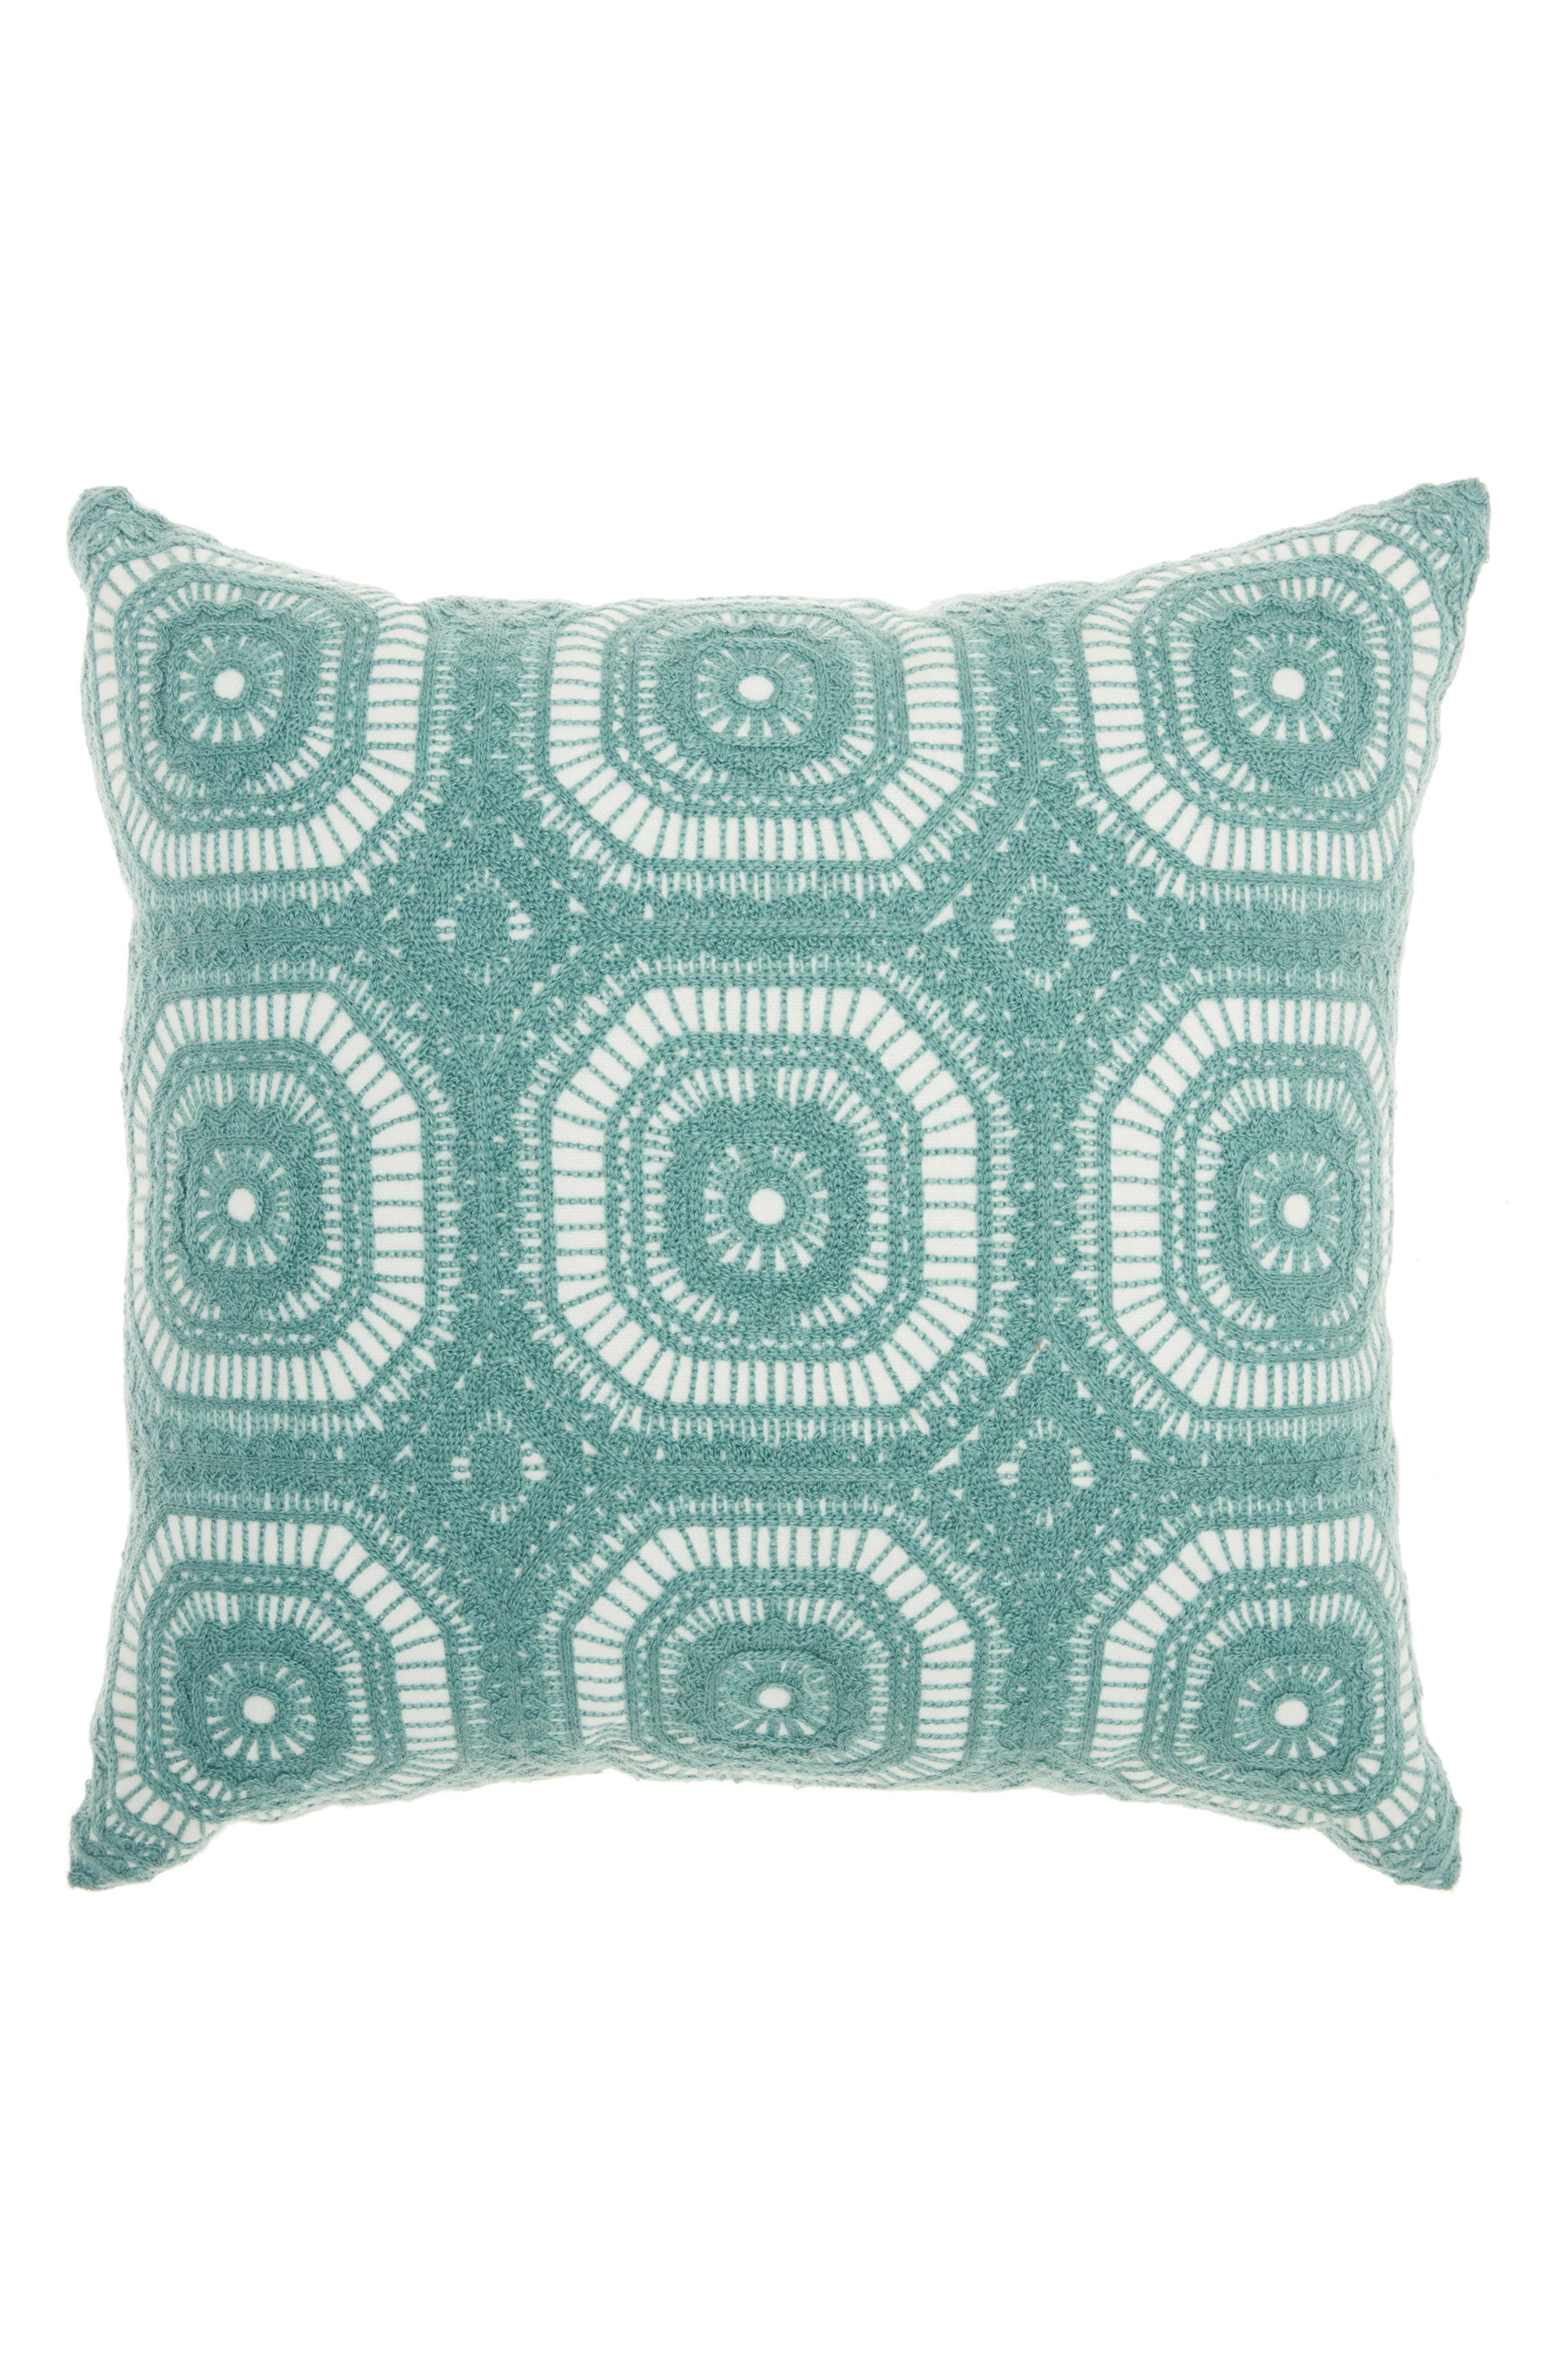 Tile Embroidered Accent Pillow,                             Main thumbnail 1, color,                             Celadon